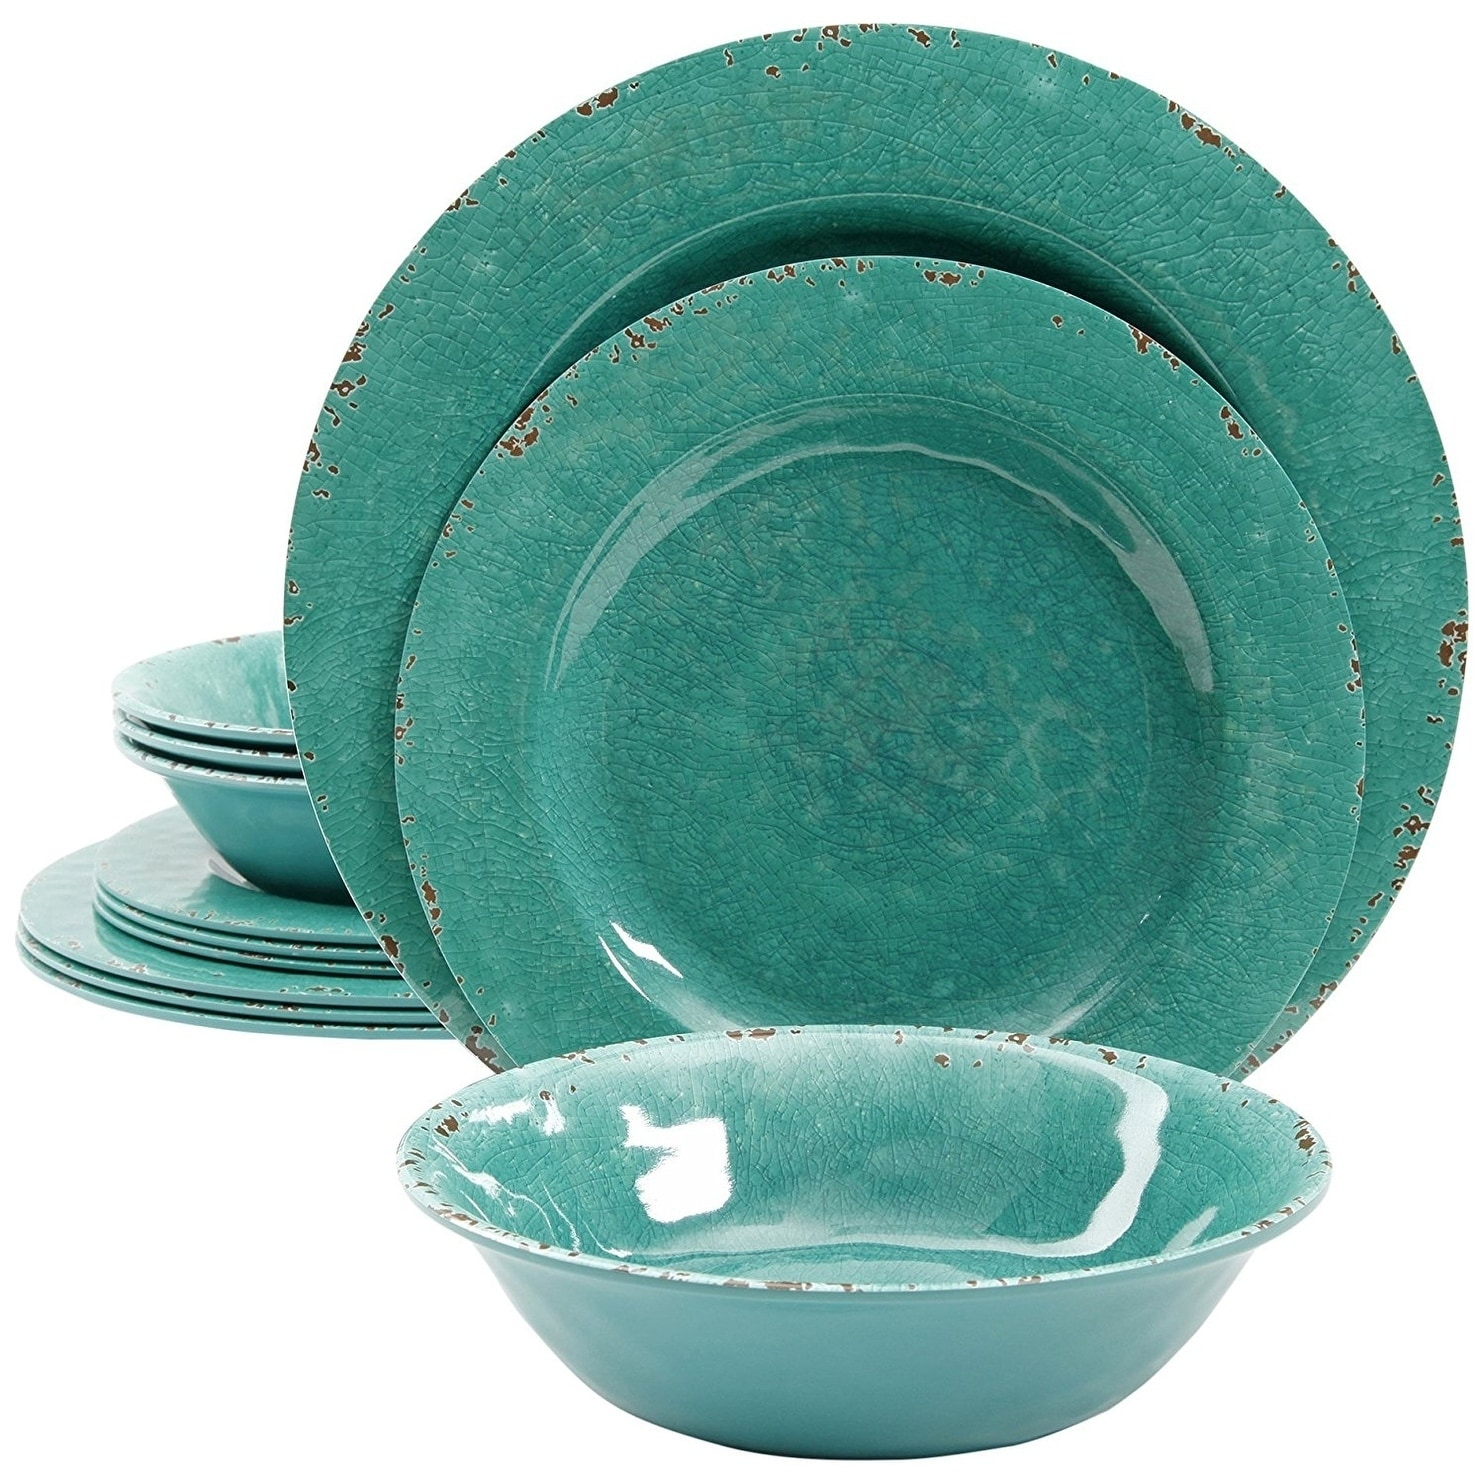 e84e9f01b6c Shop Rustic 12 Pcs. Durable Melamine Dinner set For 4 Person - Green - On  Sale - Free Shipping On Orders Over  45 - Overstock - 18595467